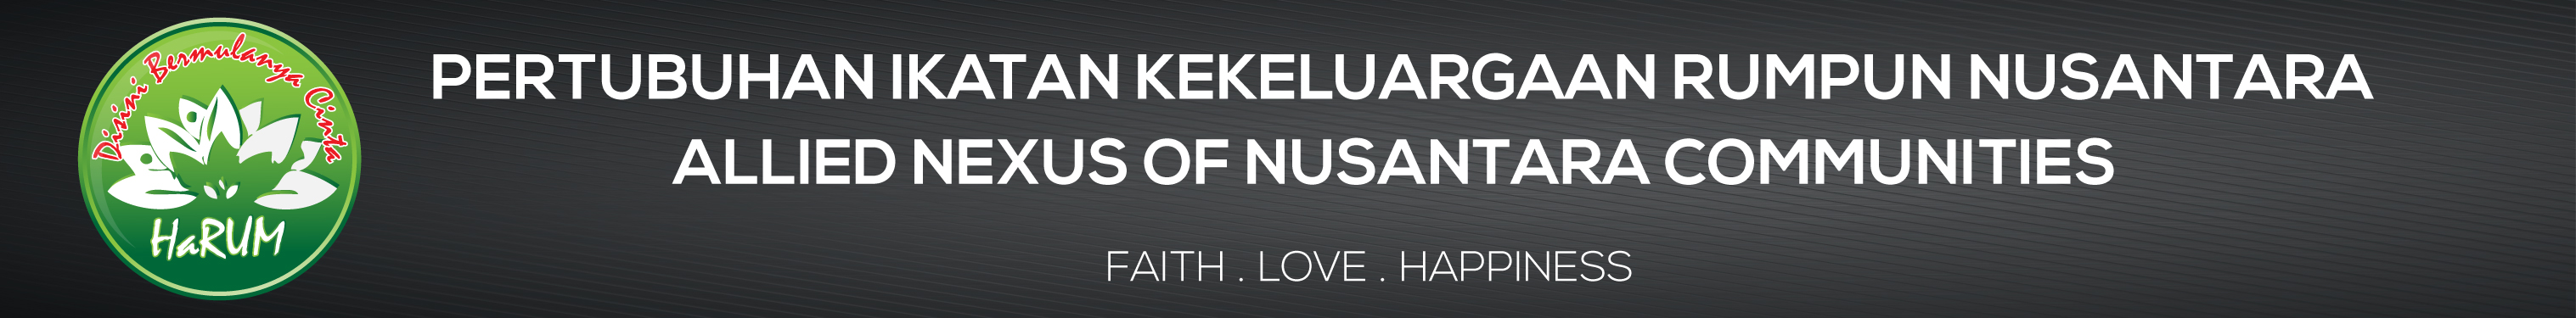 Allied Nexus Of Nusantara Communities (HaRUM)